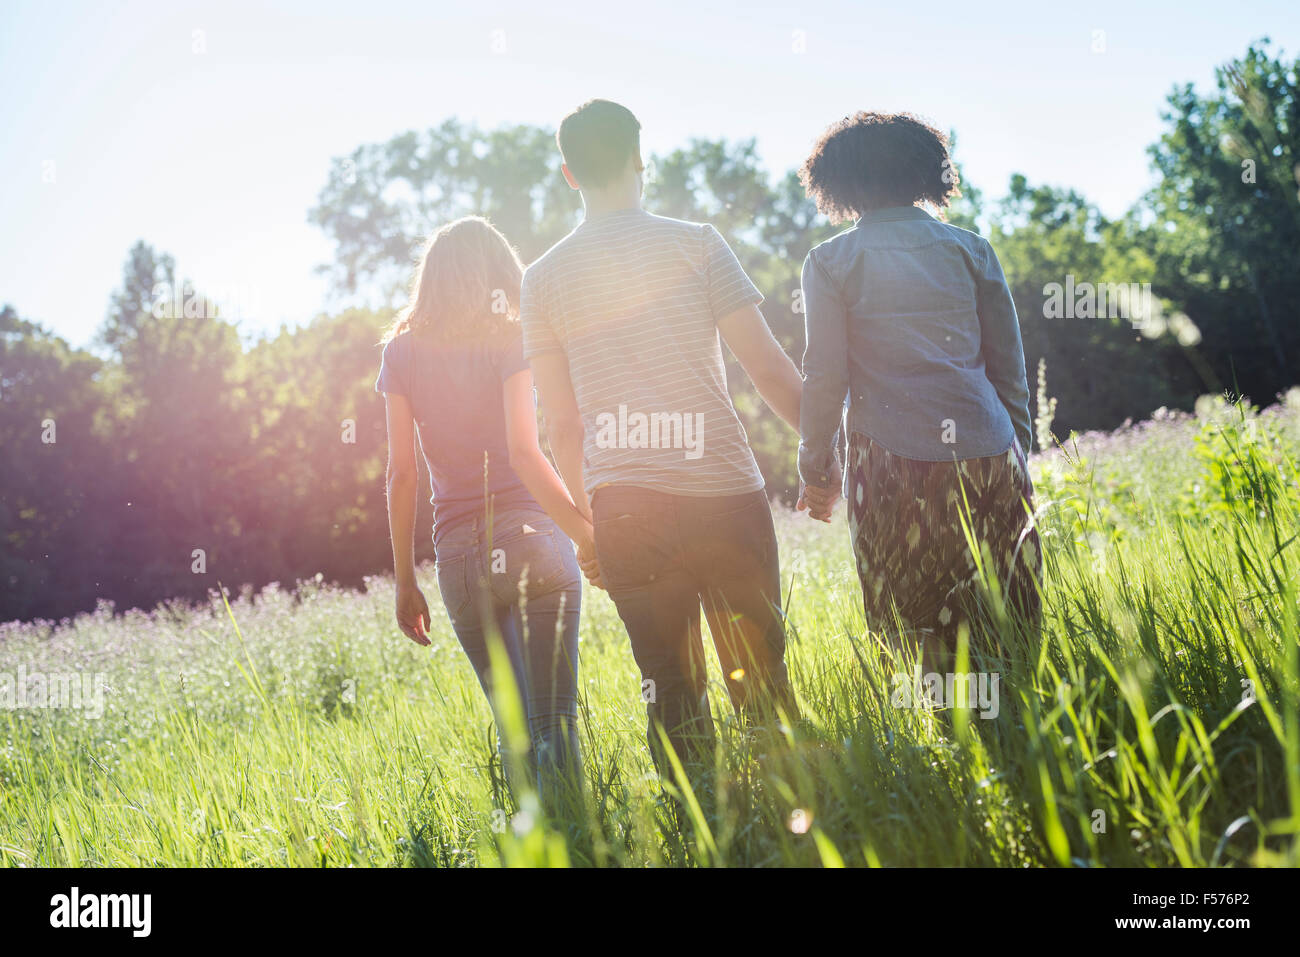 Three people walking hand in hand through long grass, in summer. Rear view. - Stock Image